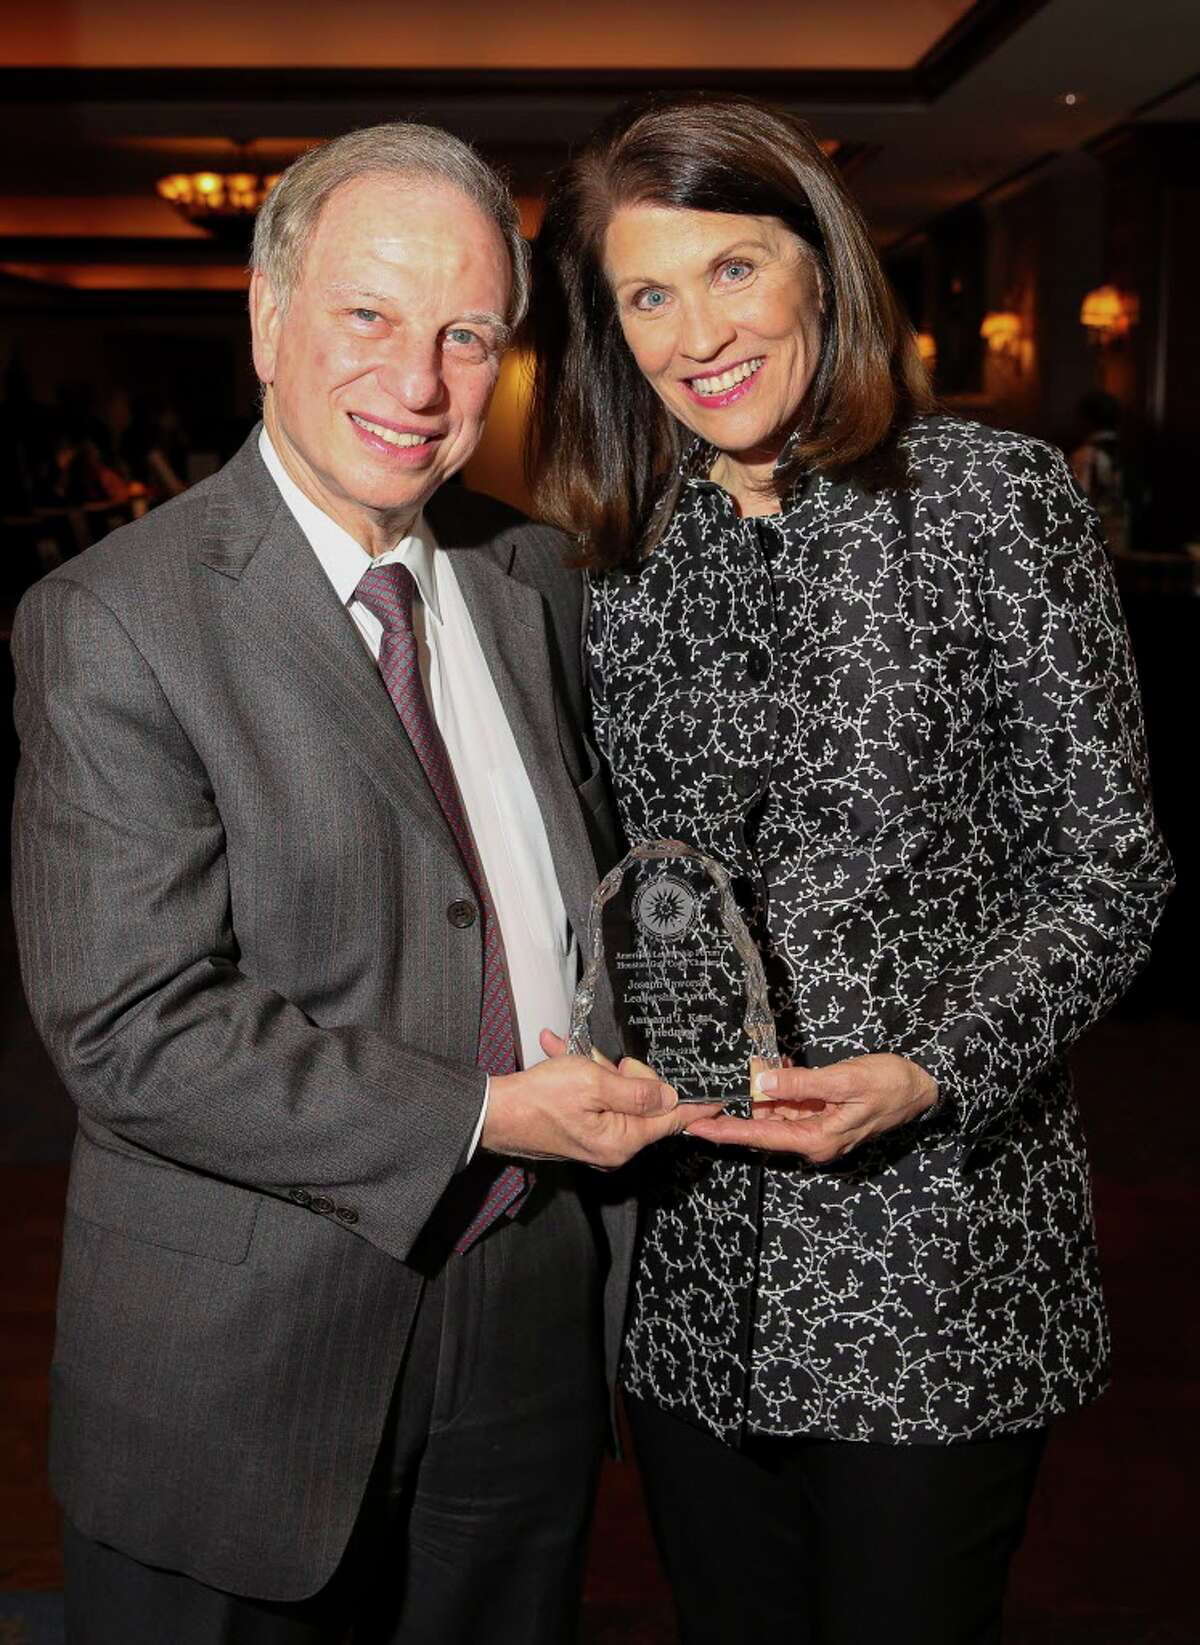 Honorees Ann and J. Kent Friedman pose for a photo with their award award plaque at the American Leadership Forum's Joseph Jaworski Leadership Award dinner at The Houstonian Wednesday, April 26, 2017, in Houston.